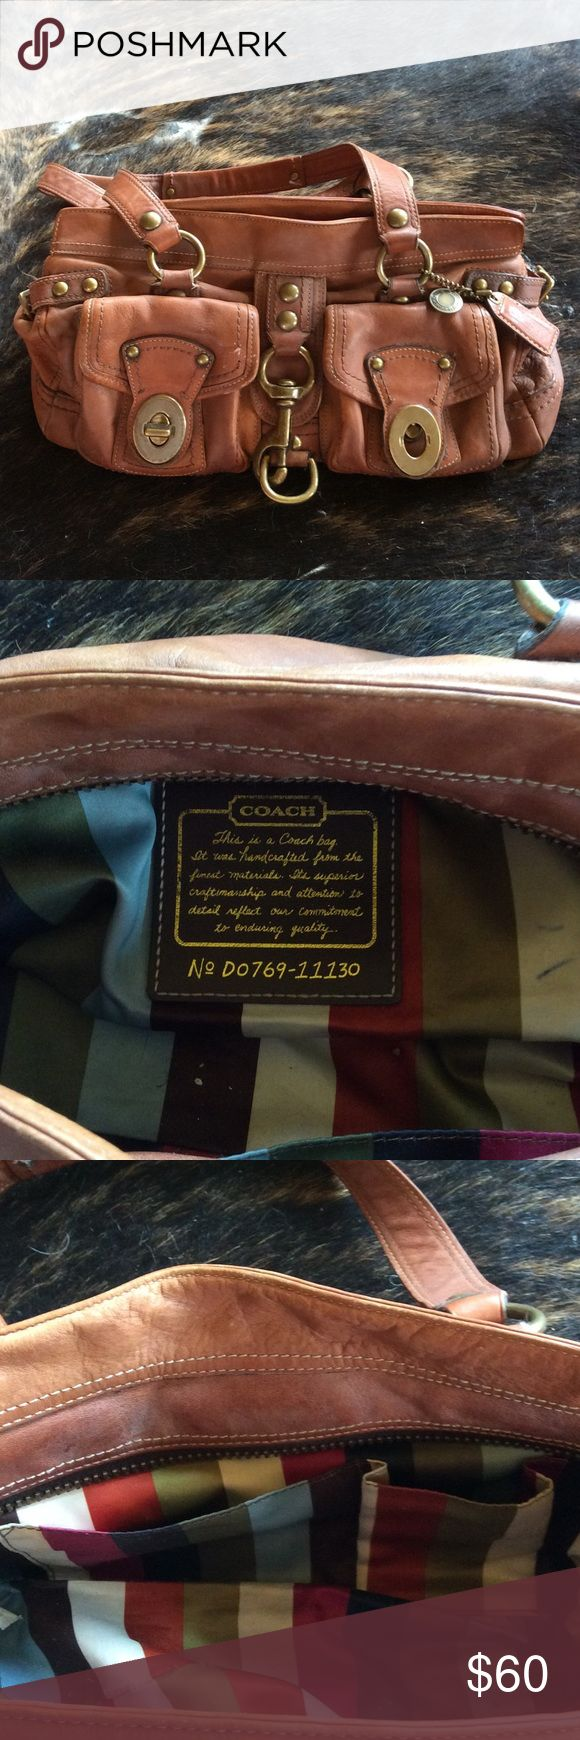 Coach legacy brown satchel Preloved, authentic whiskey color and worn in leather, missing one turn latch which can be refurbished at Coach, hook and zipper closure work fine, own a piece of quality and legacy history Coach Bags Satchels